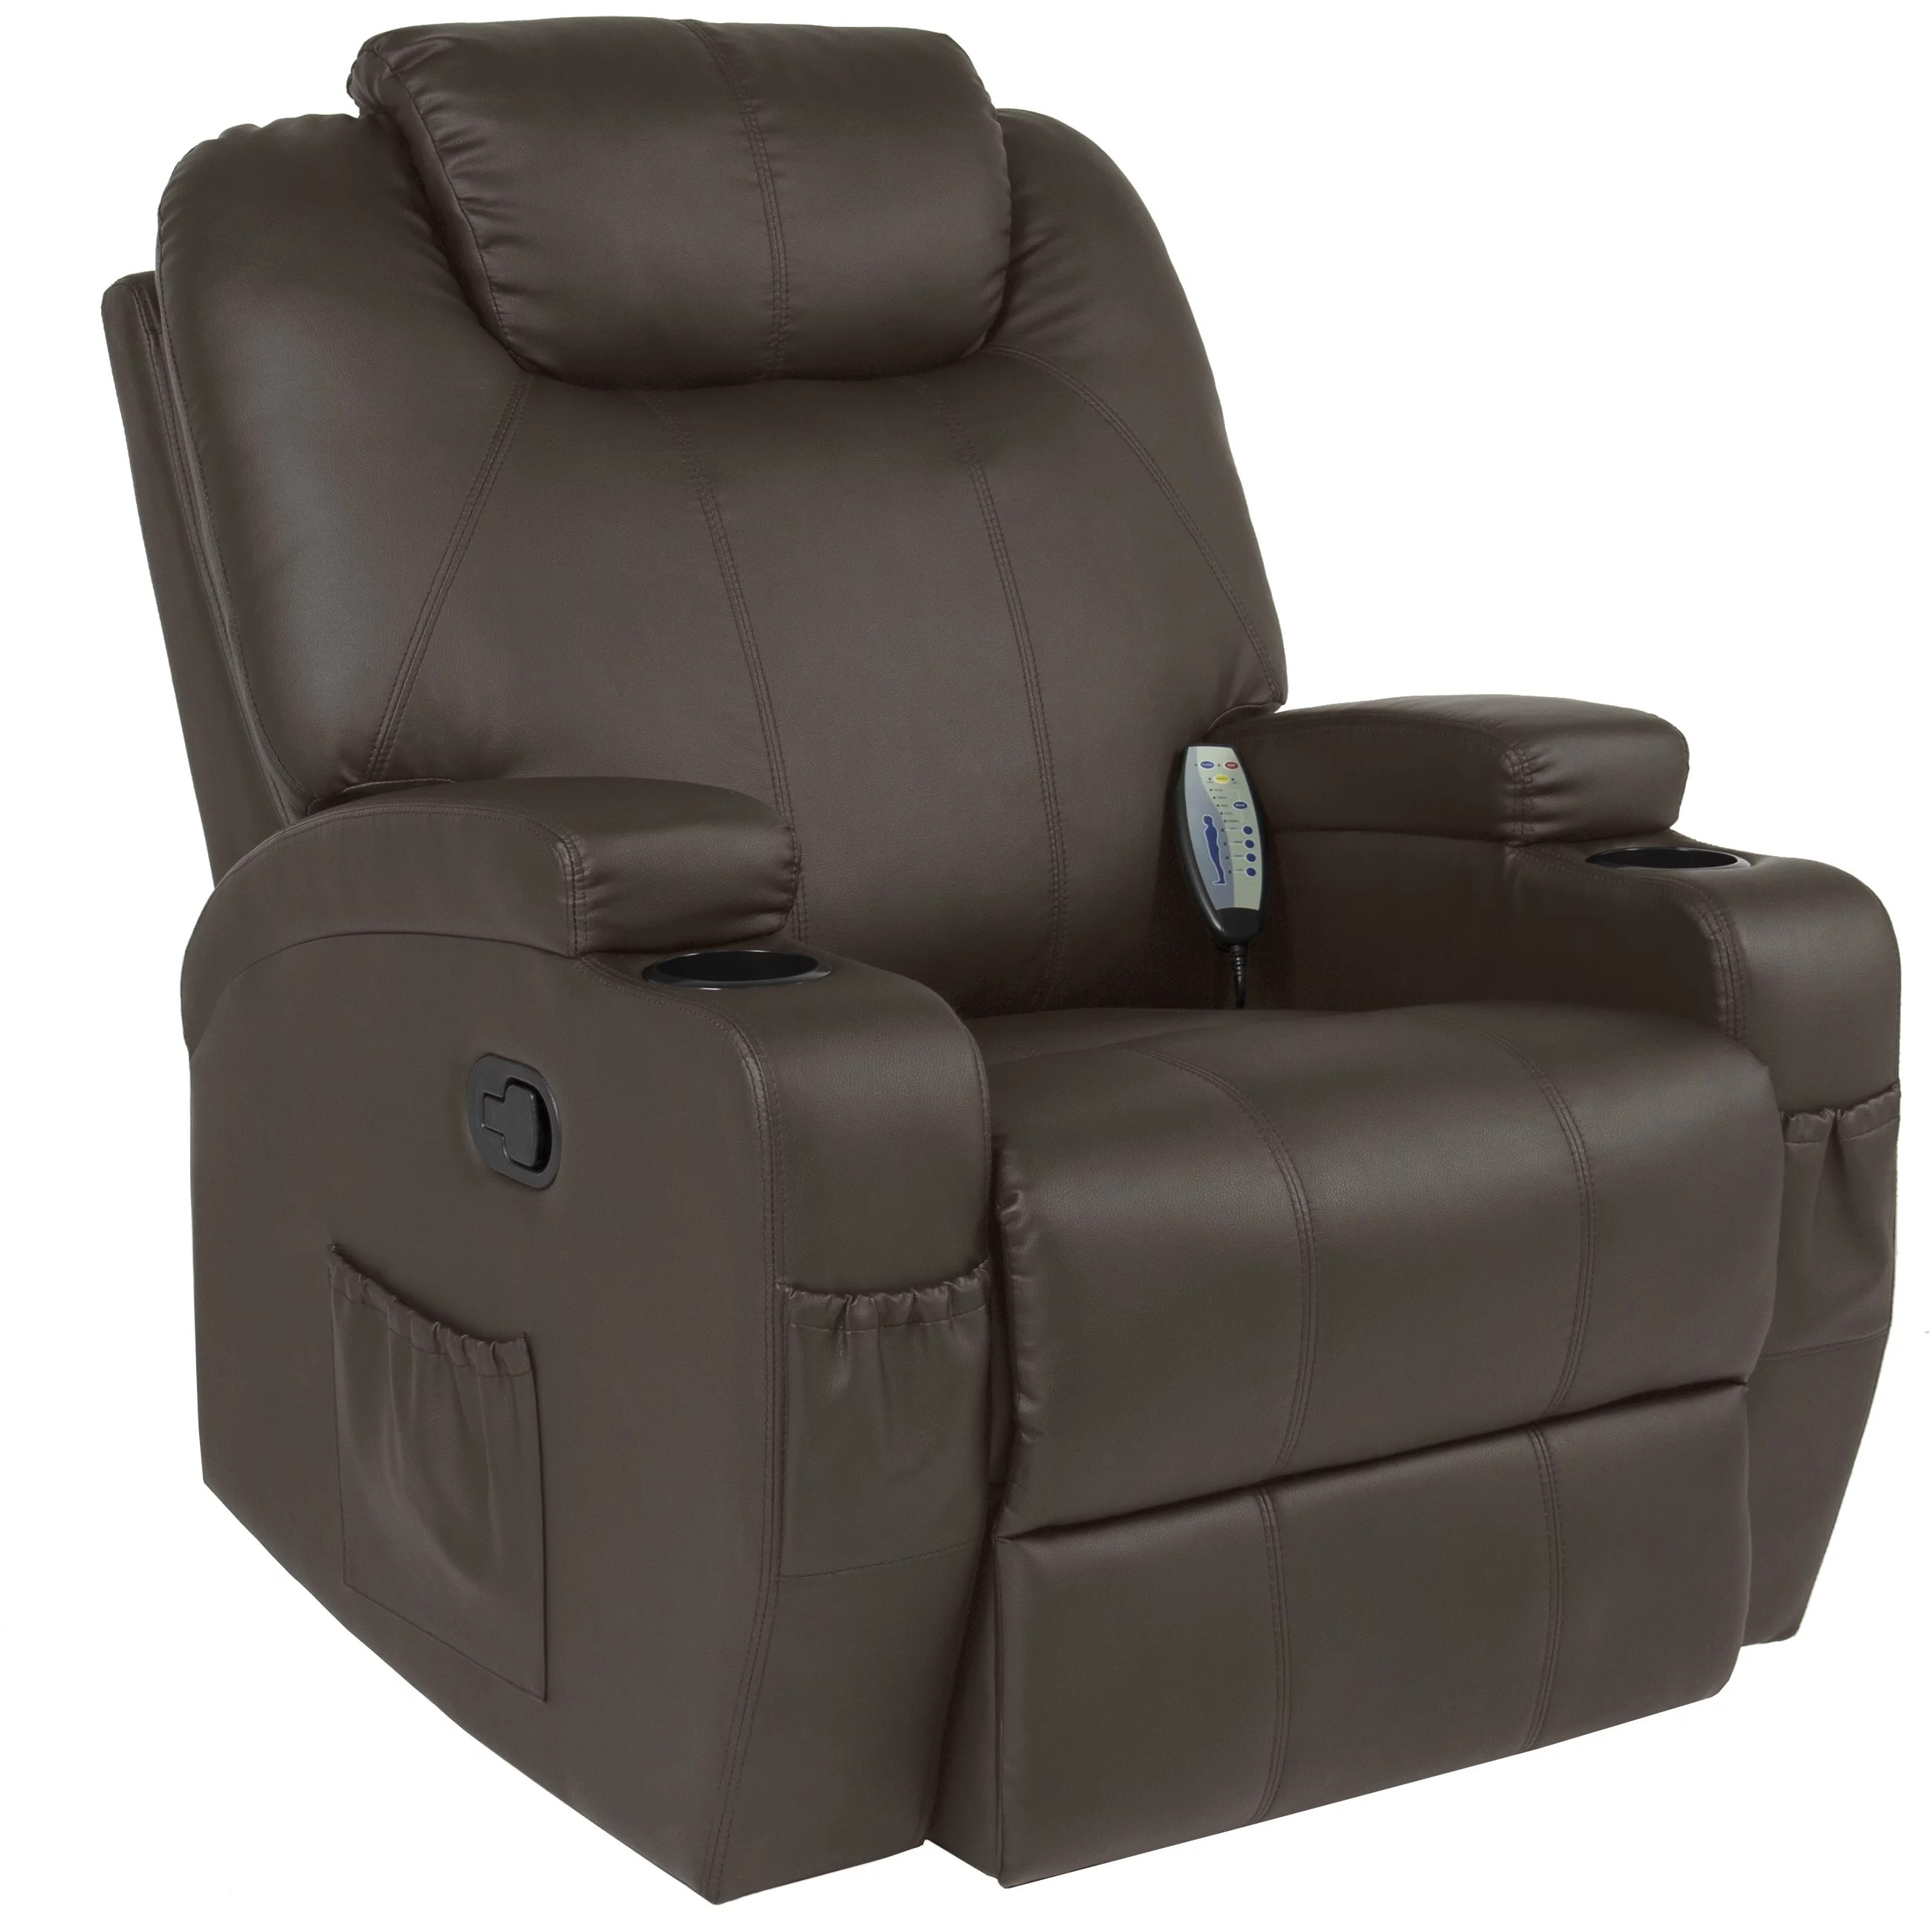 heated chair cover for recliner feet replacements best choice products executive pu leather swivel electric massage w remote control 5 heat vibration modes 2 cup holders